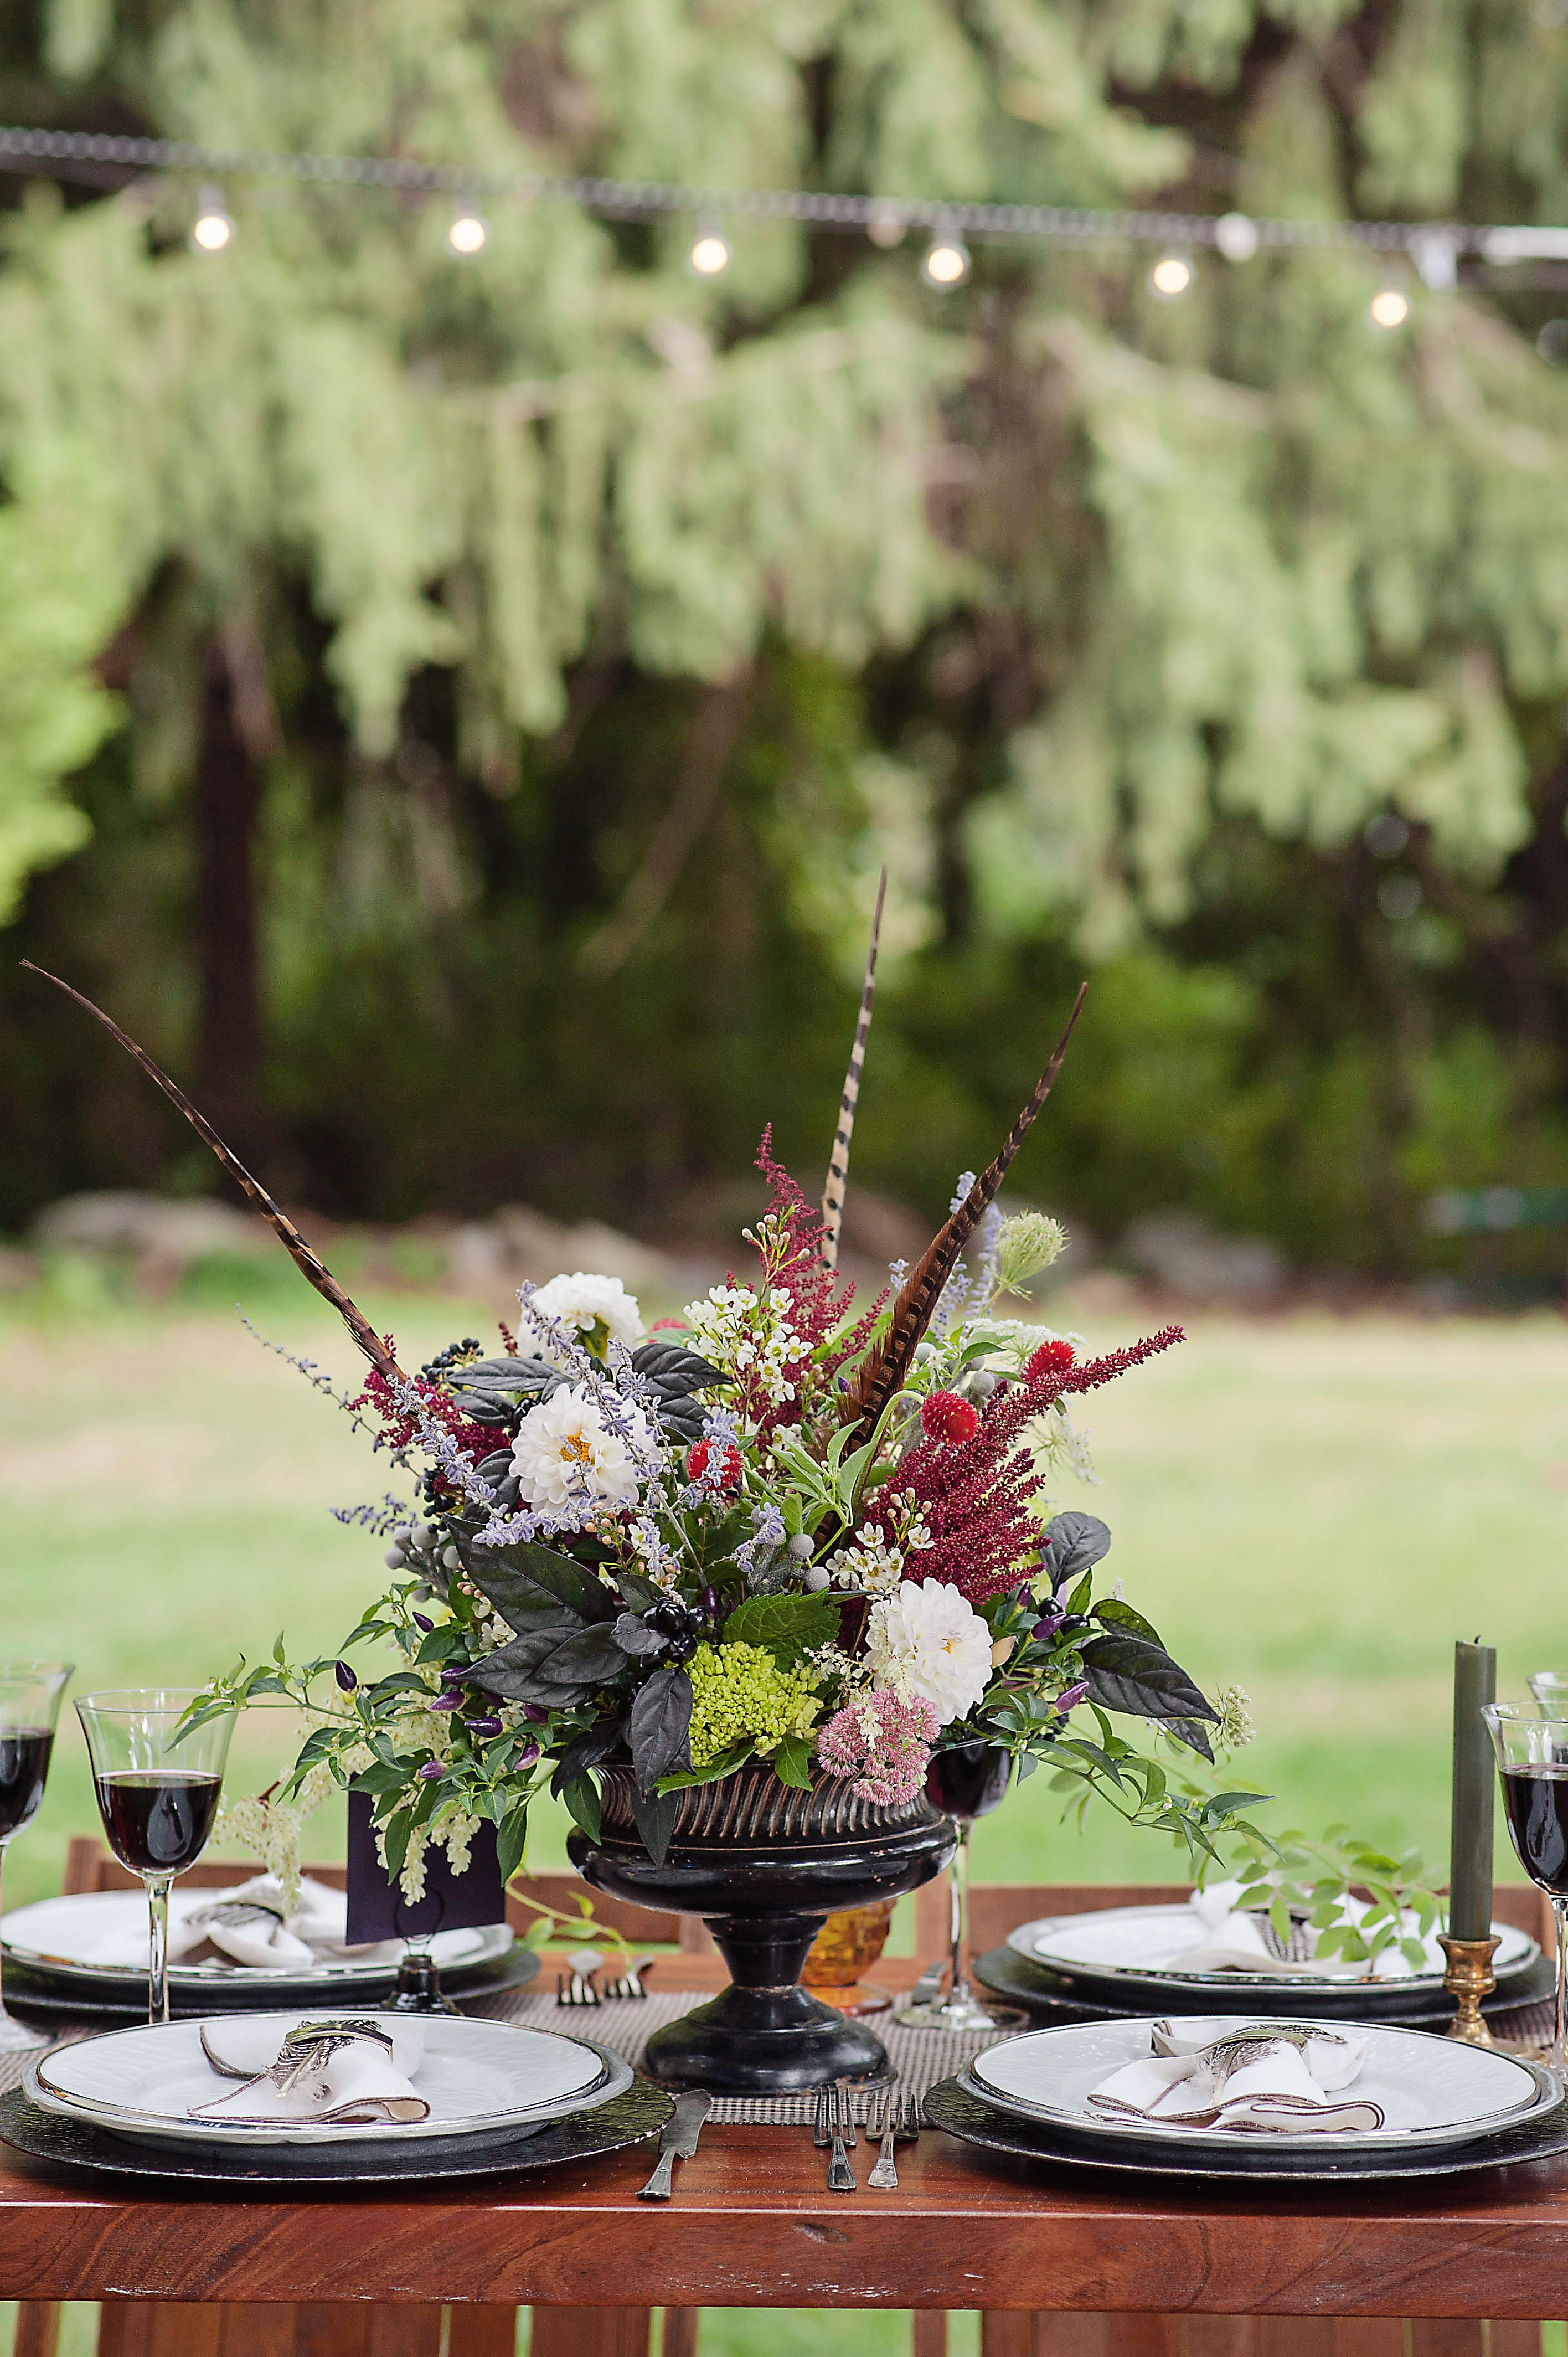 Local farm flowers masculine rustic vintage tablescape for Masculine rustic decor